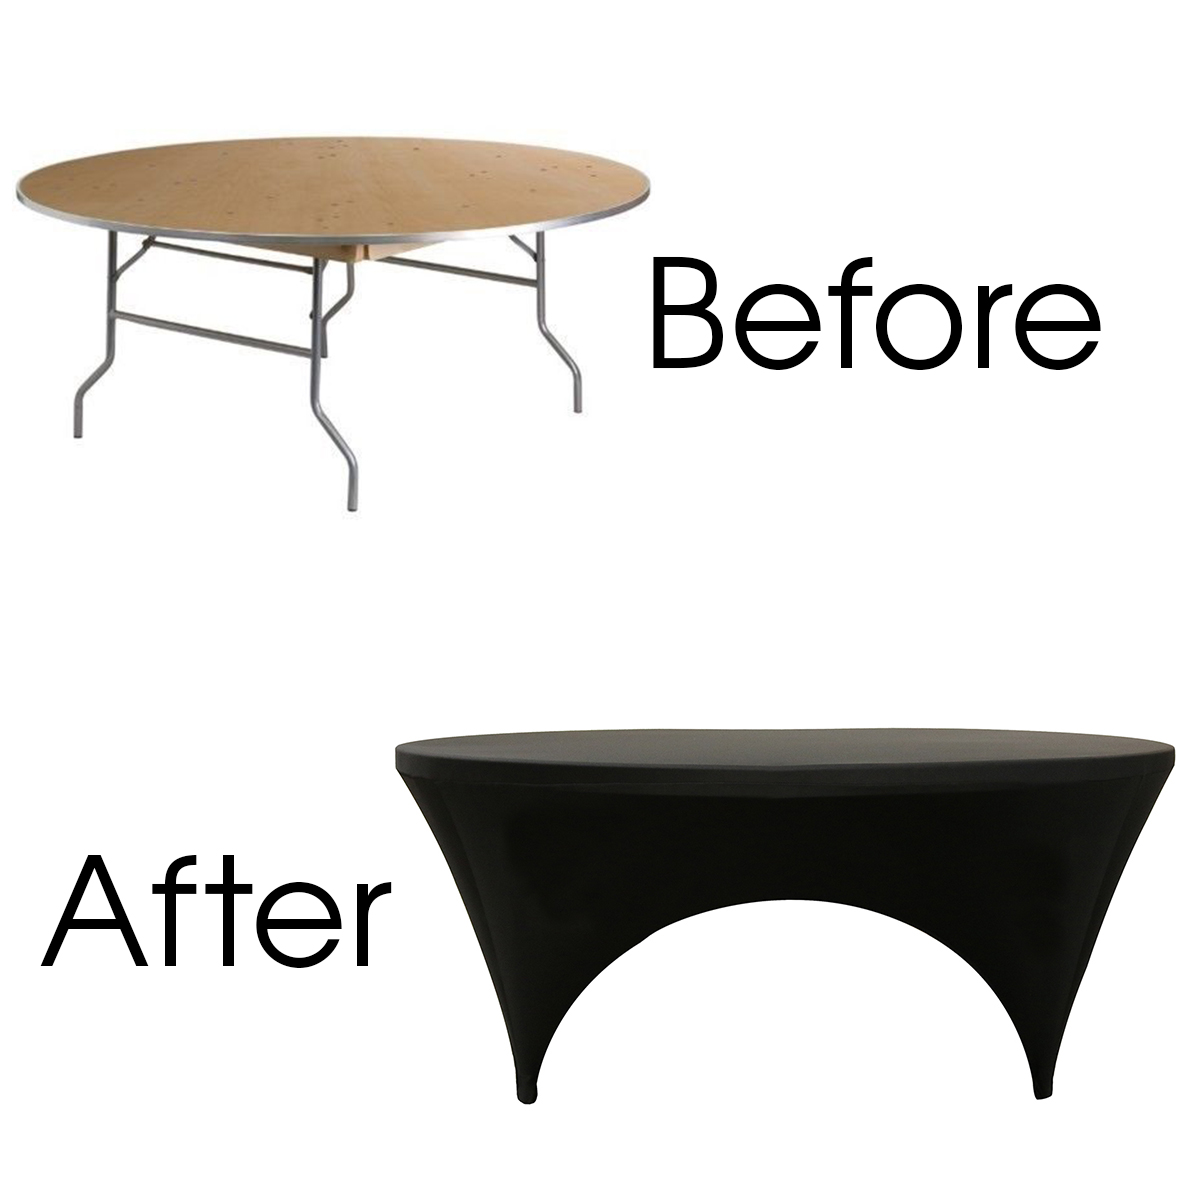 Round Sides Open Spandex Table Cover Specifications